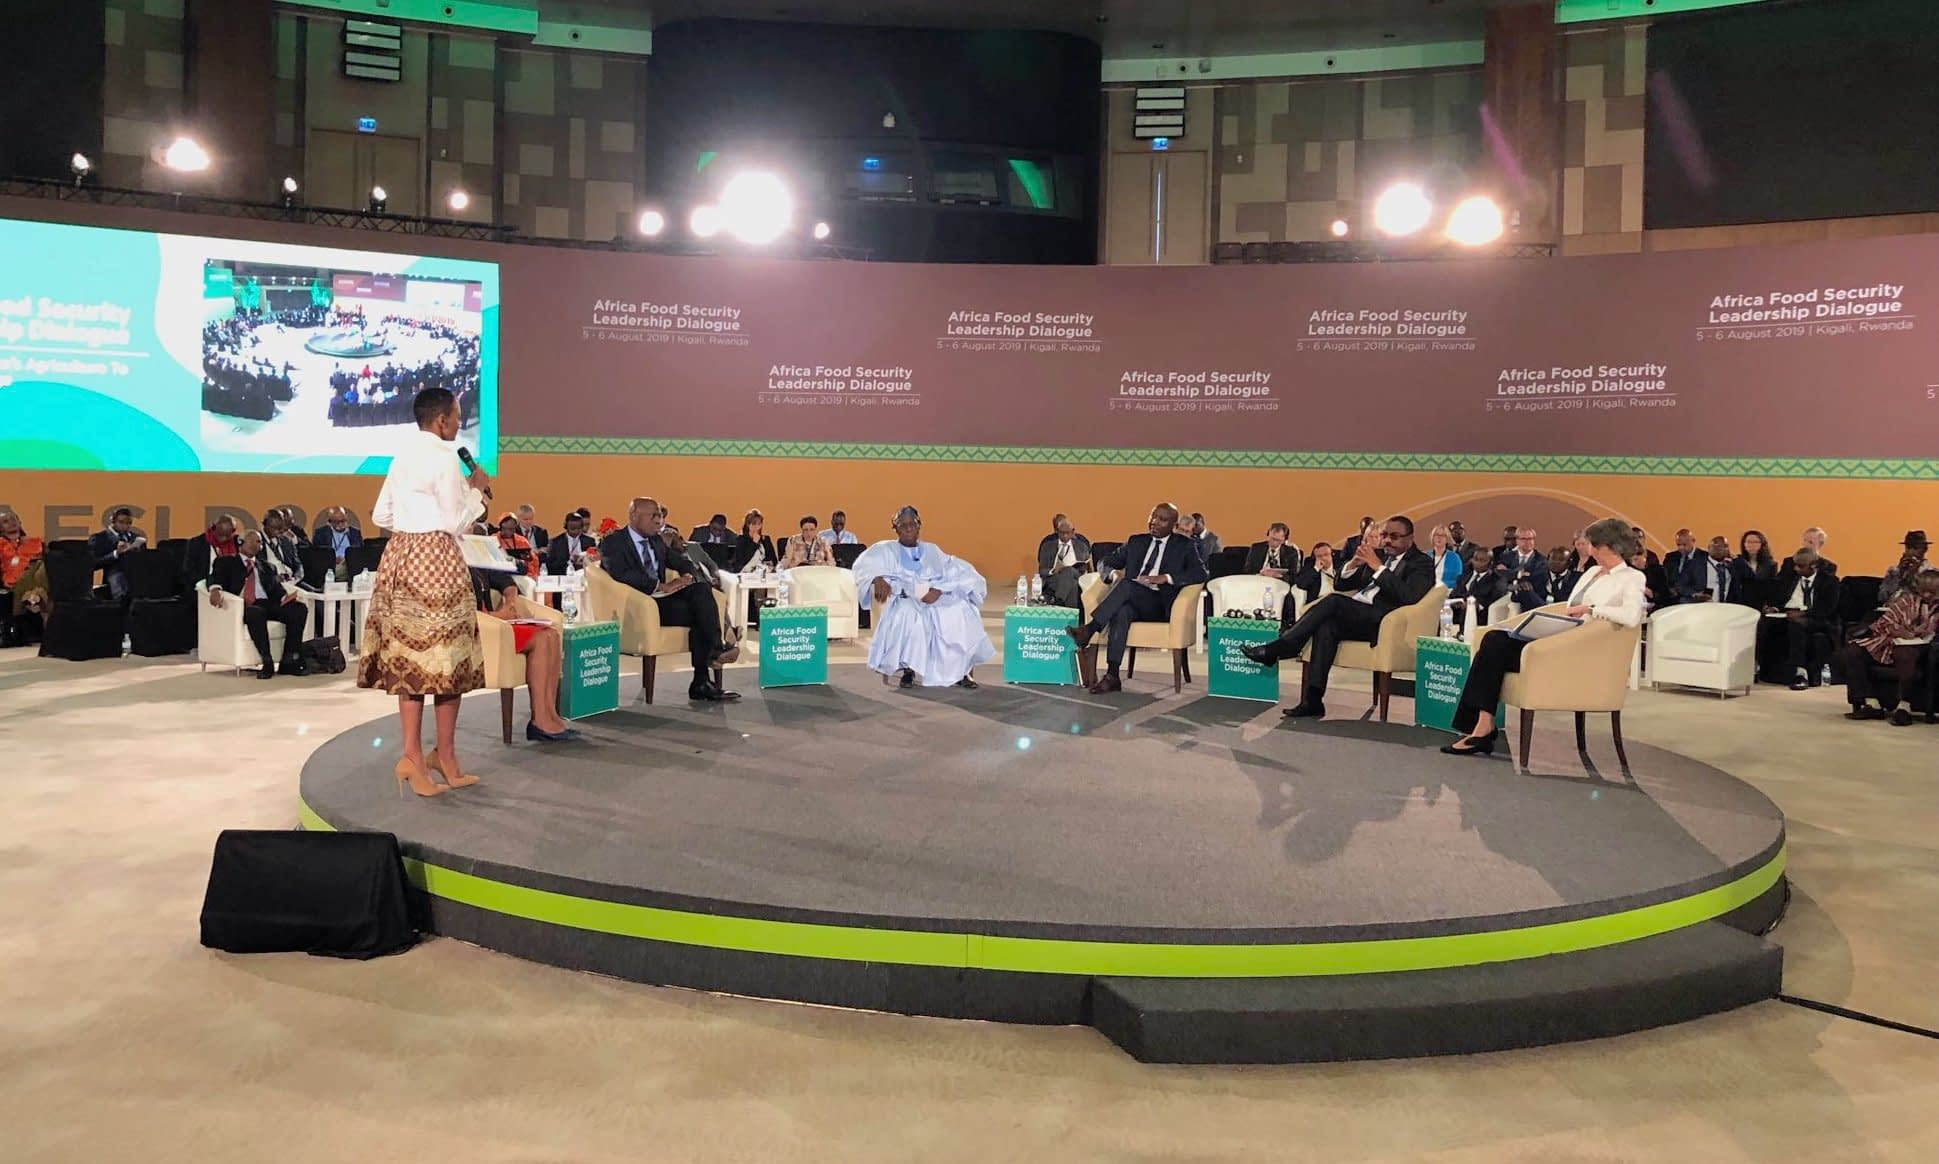 The Prime Minister of Rwanda, Édouard Ngirente, and other leaders discussed regional and national priorities at the Africa Food Security Leadership Dialogue. (Photo: Martin Kropff/CIMMYT)